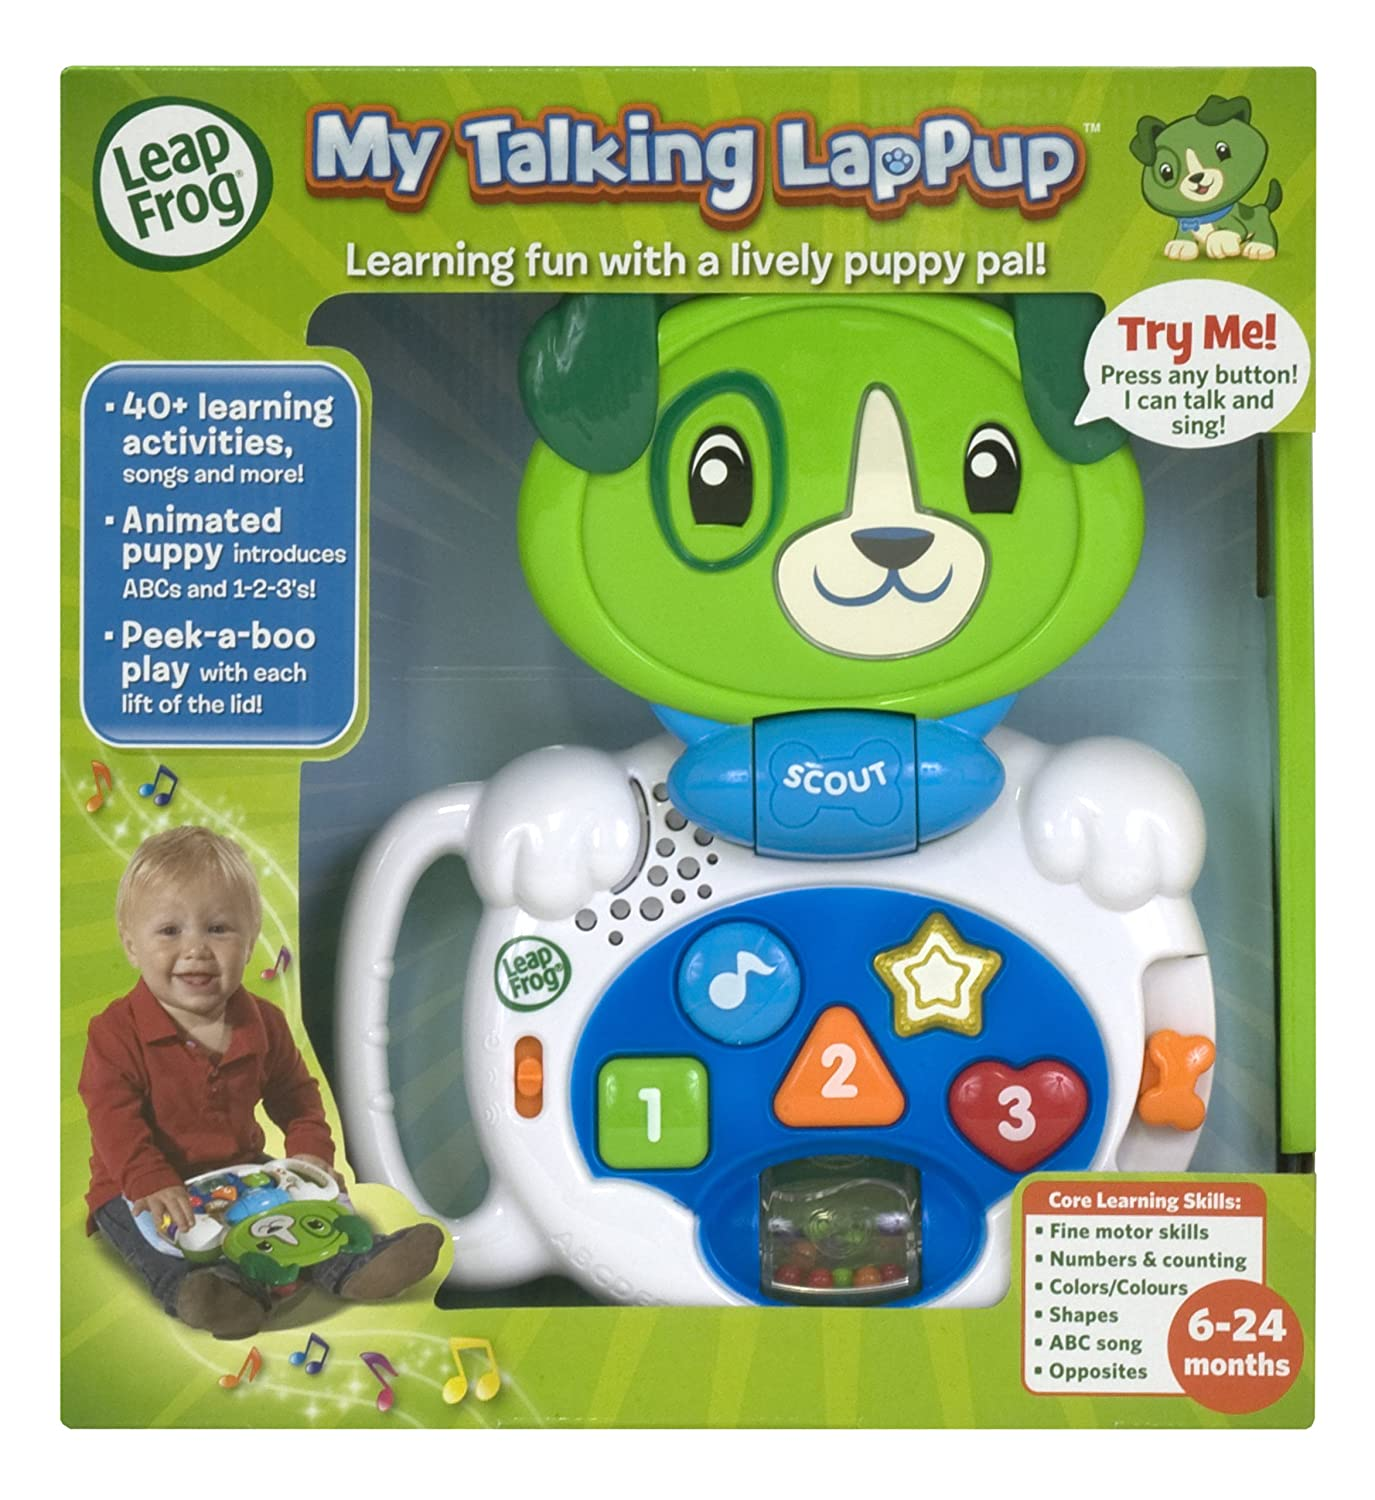 LeapFrog My Talking LapPup Scout Amazon Toys & Games